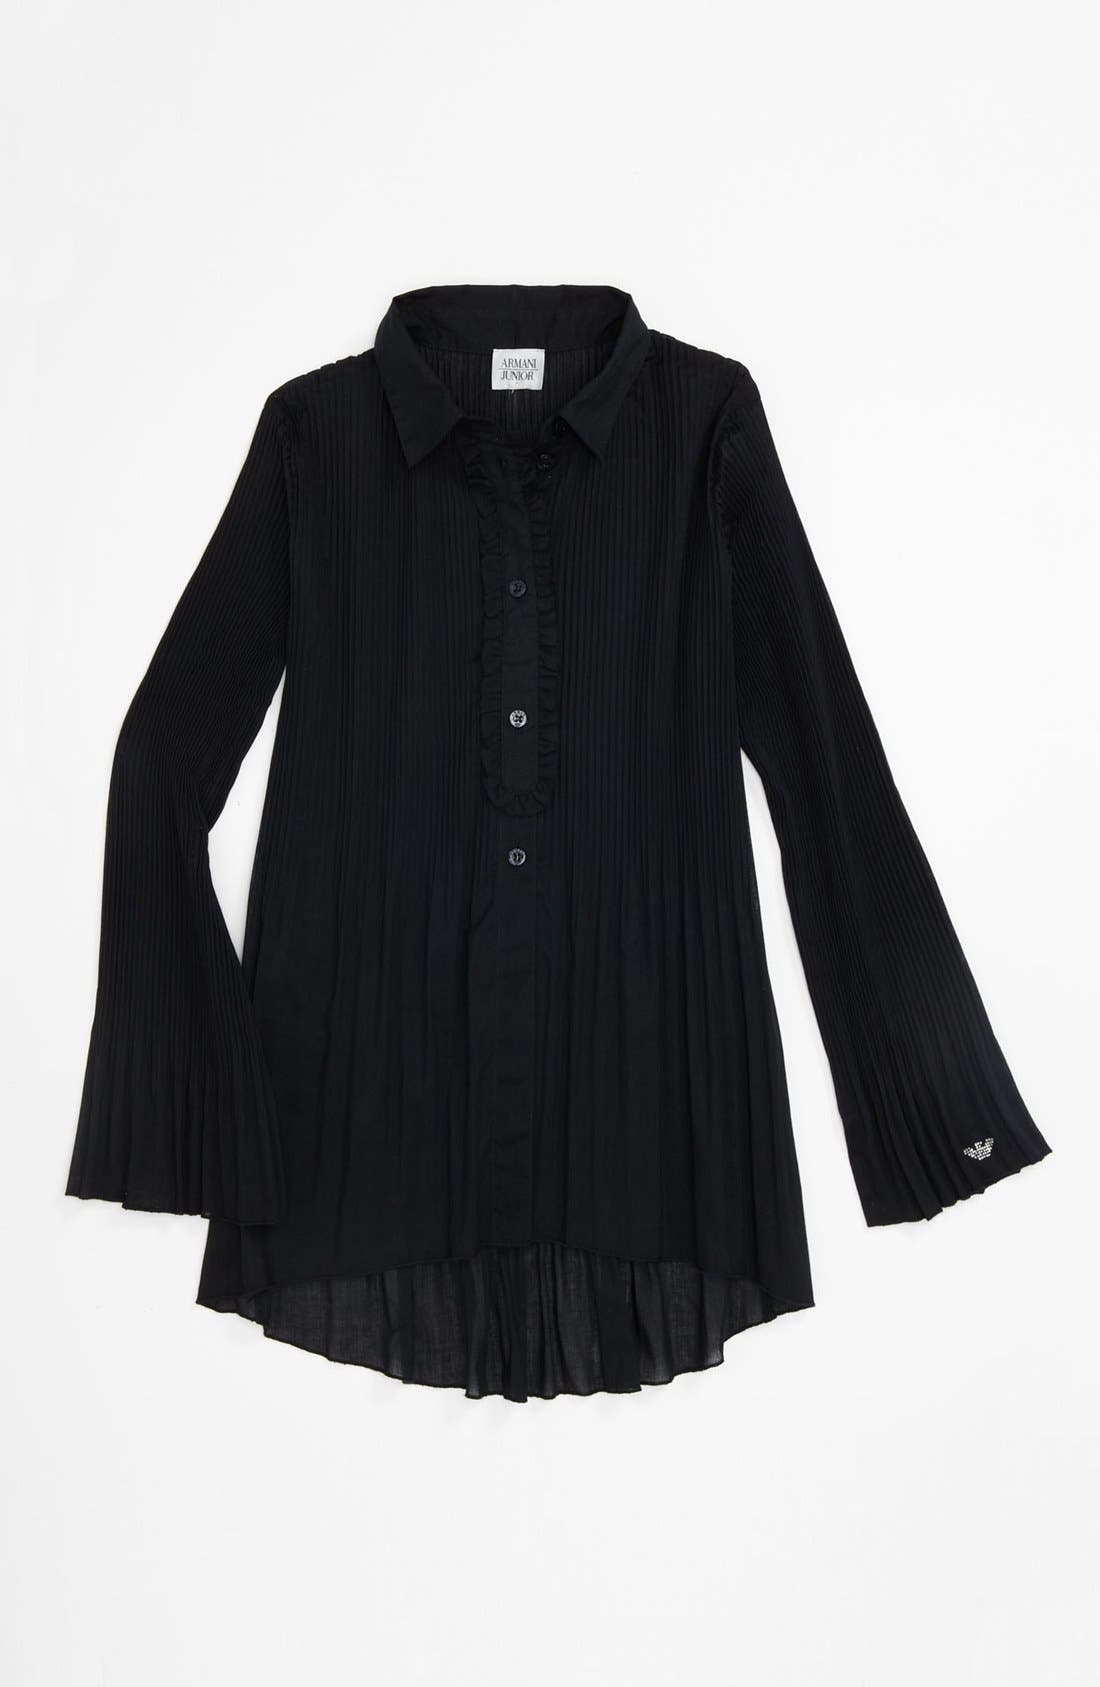 Alternate Image 1 Selected - Armani Junior Pleated Blouse (Big Girls)